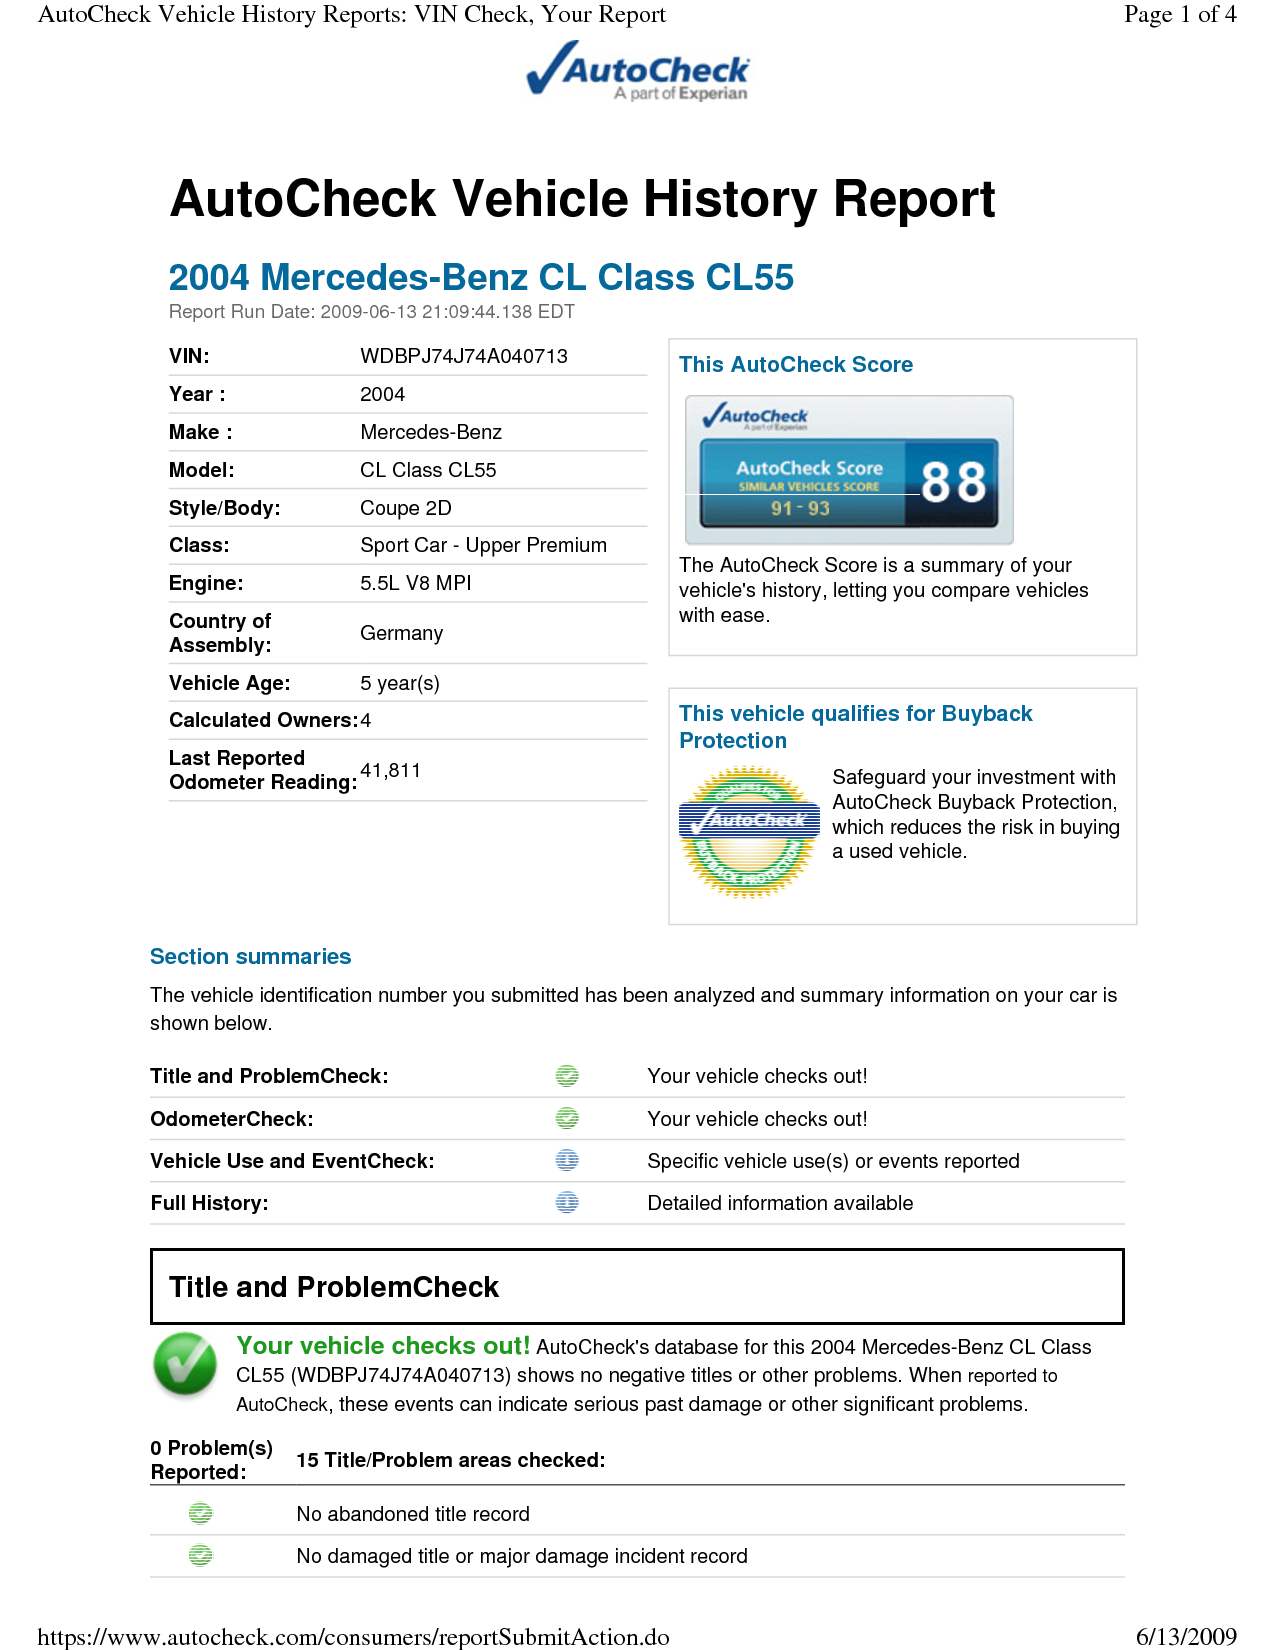 How to Get A Free Carfax Beautiful Carfax Vs Autocheck Reports What You Don T Know